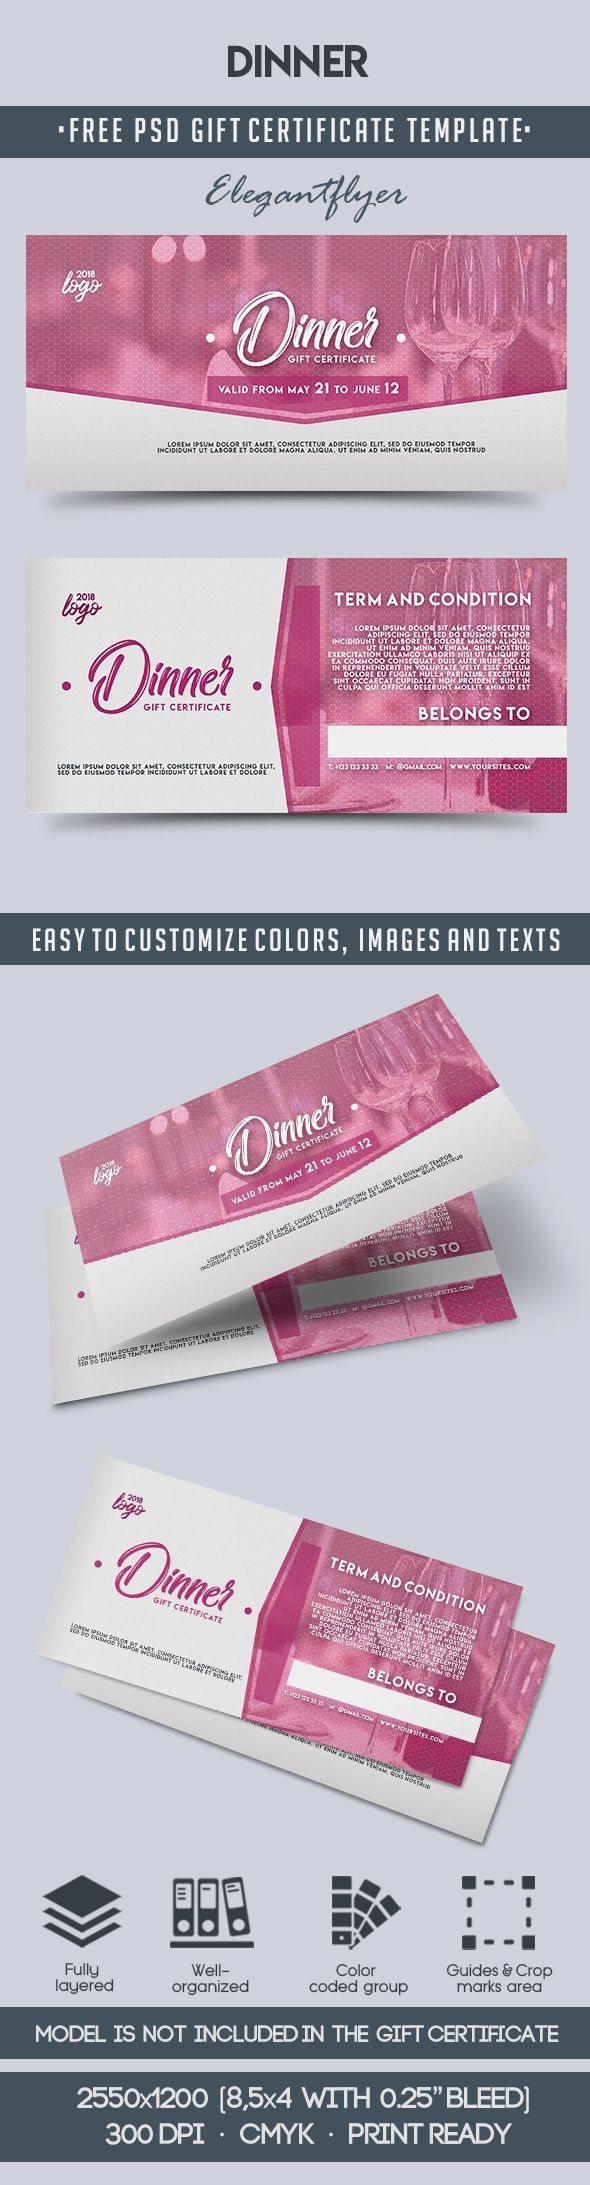 Free gift certificate templates 66 pinterest free dinner invitation templates for gift voucher yelopaper Choice Image